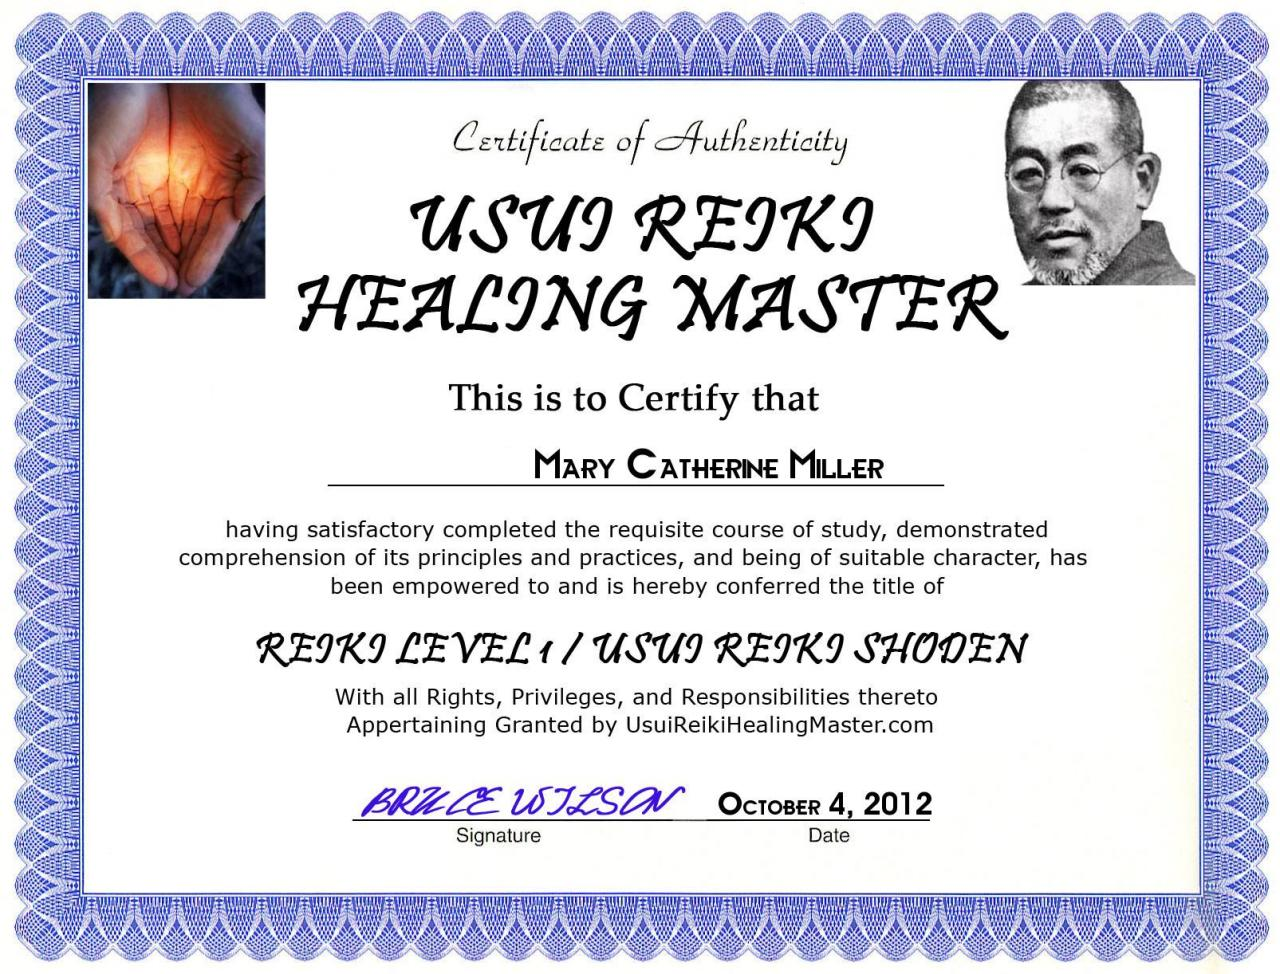 Free reiki certificate templates images templates example free free reiki certificate template download gallery certificate free reiki 1 certificate template image collections certificate reiki yadclub Image collections